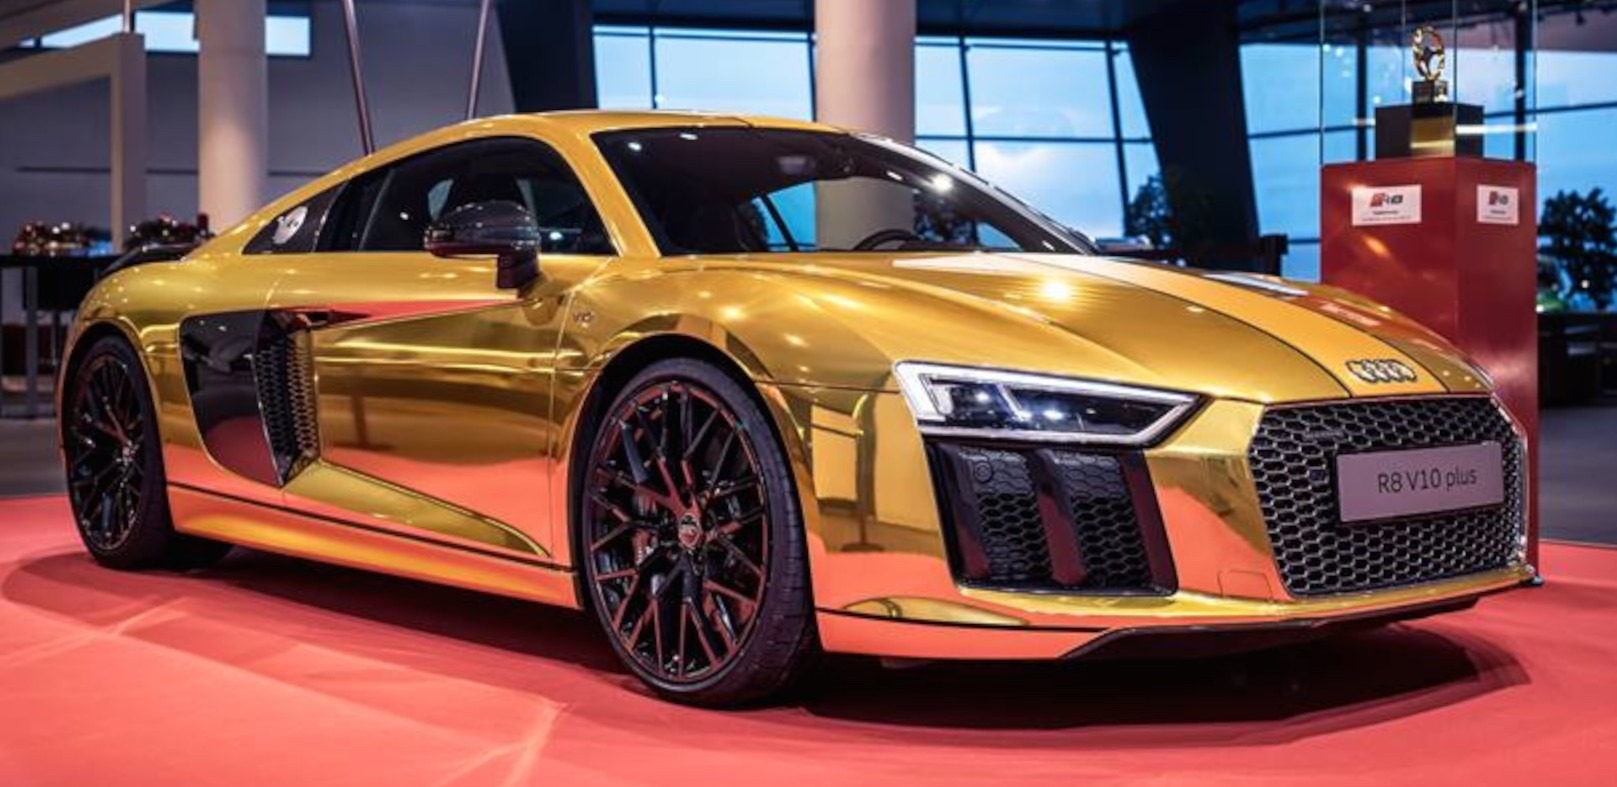 One Off Gold Audi R8 V10 Plus On Display In Germany Paul